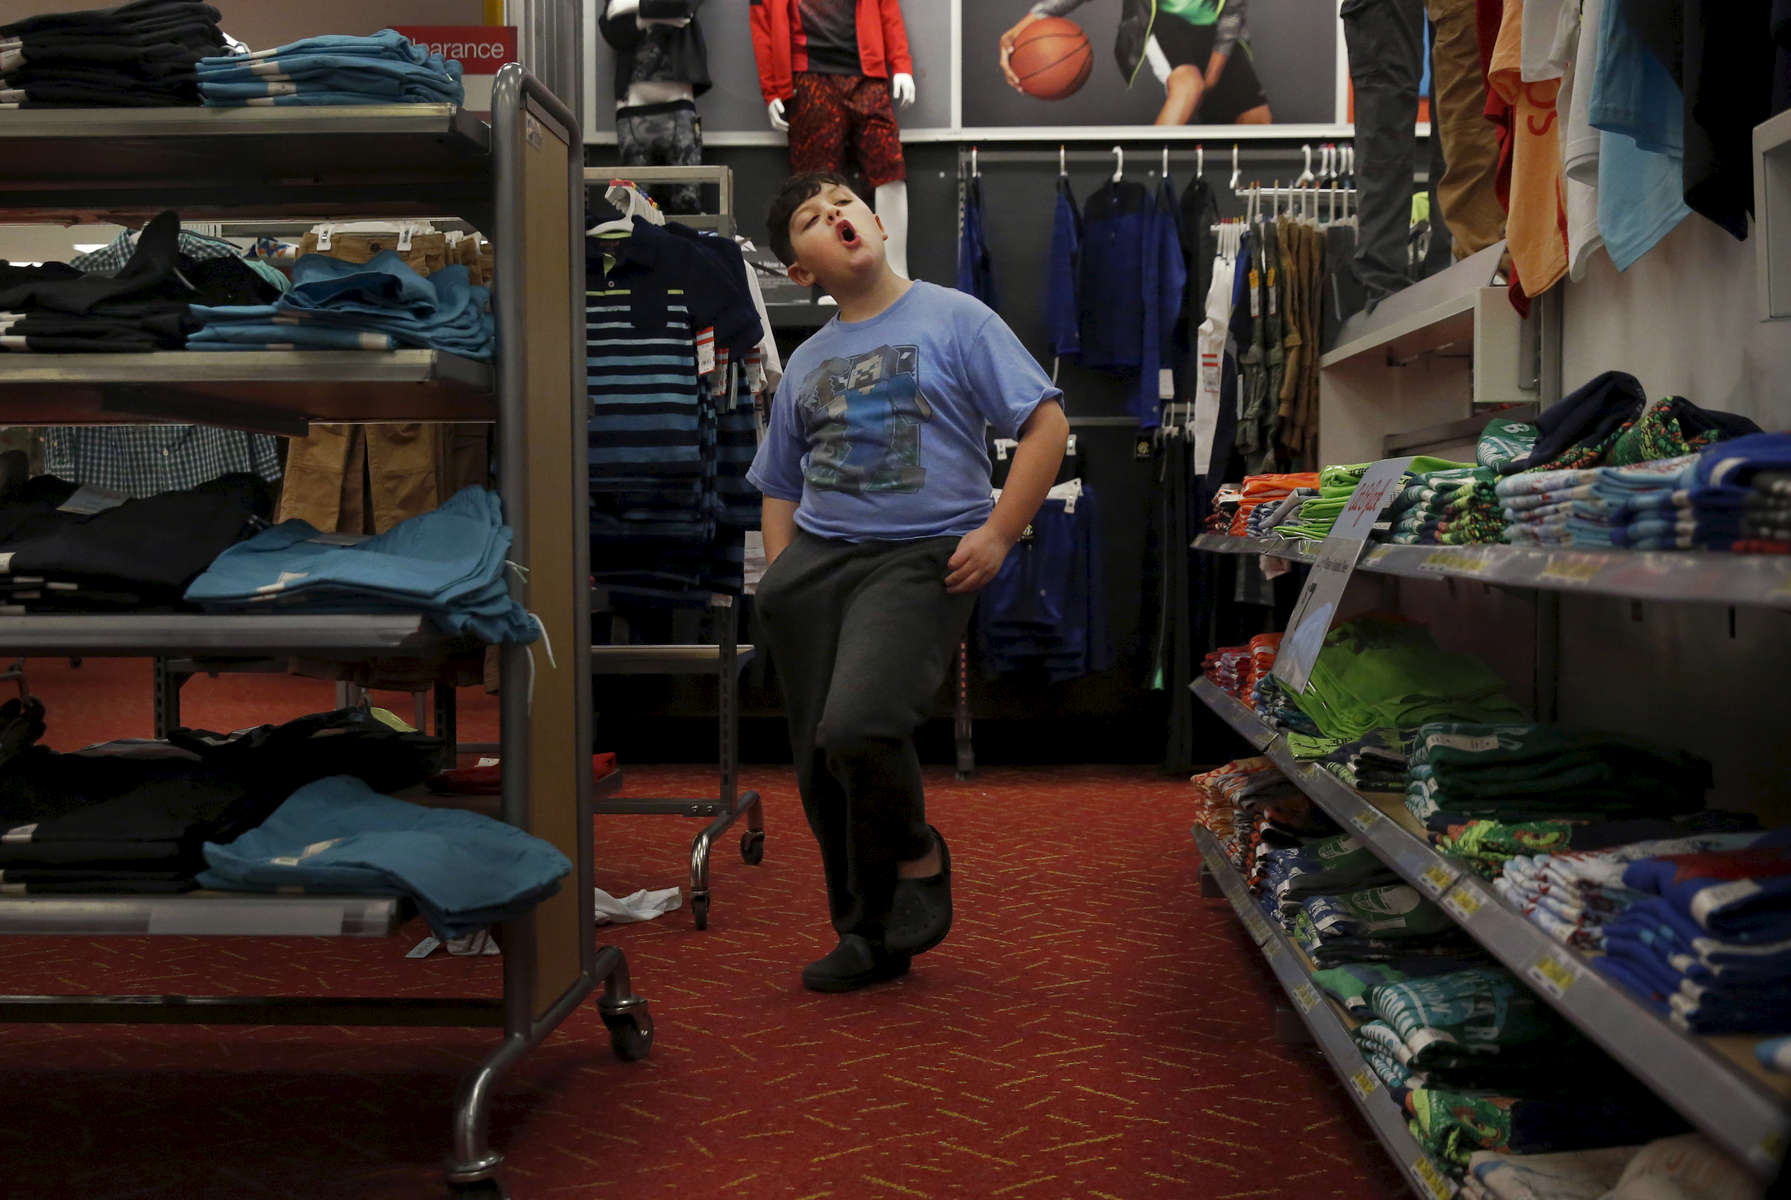 James Kaplan dances through the boy's section at Target Feb. 17, 2017 in Berkeley, Calif. while finding dress clothes with his mother and sibling.